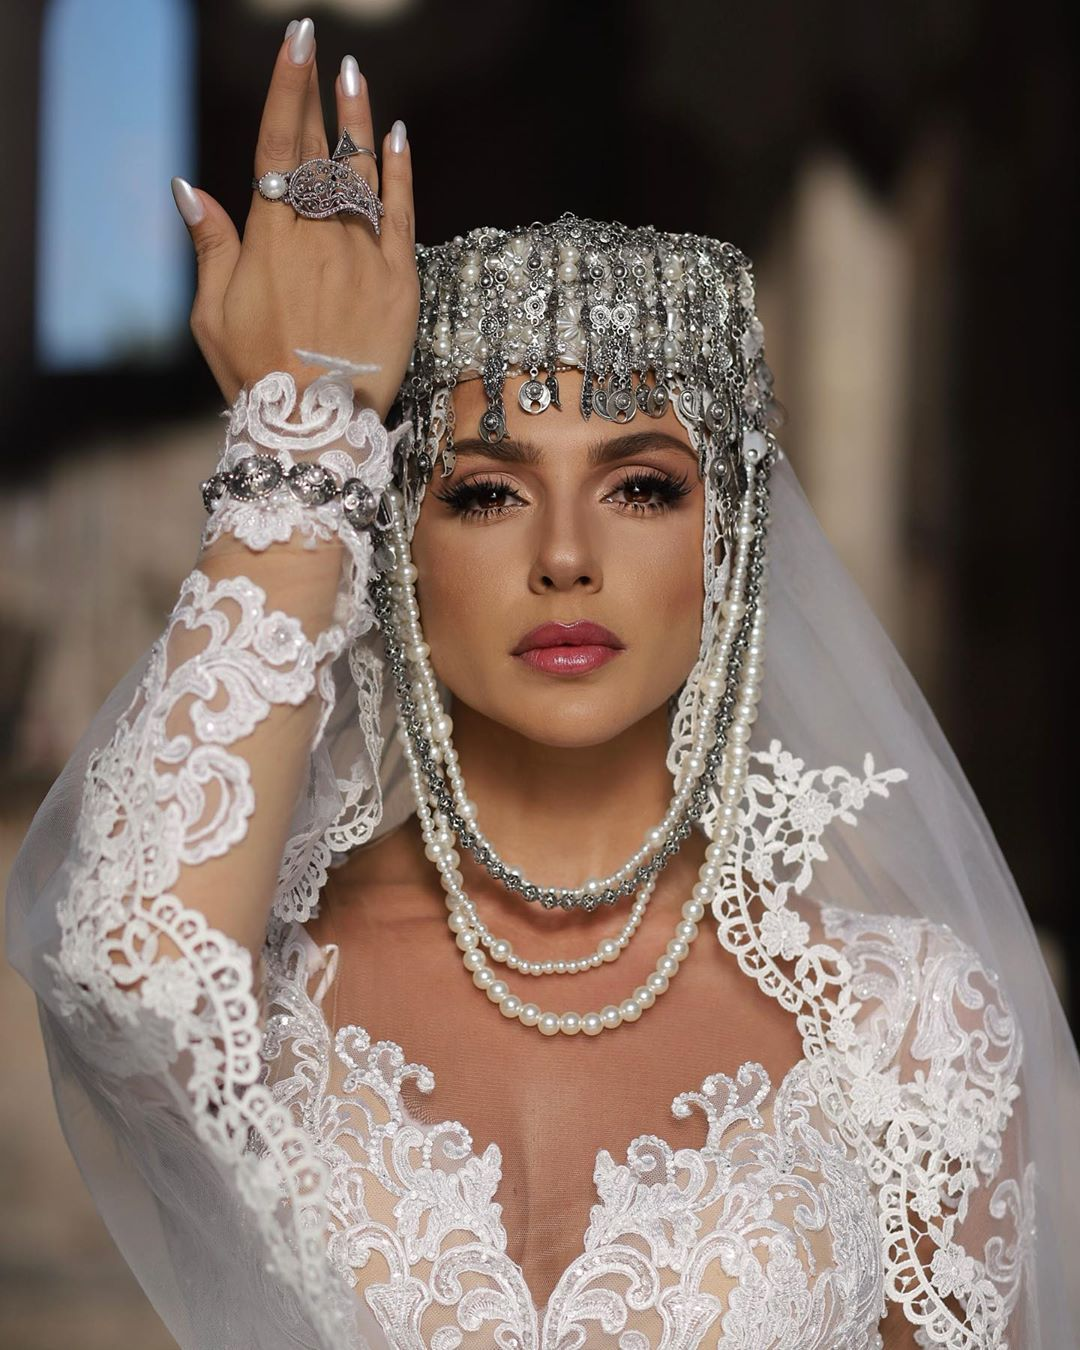 Armenian Headdress